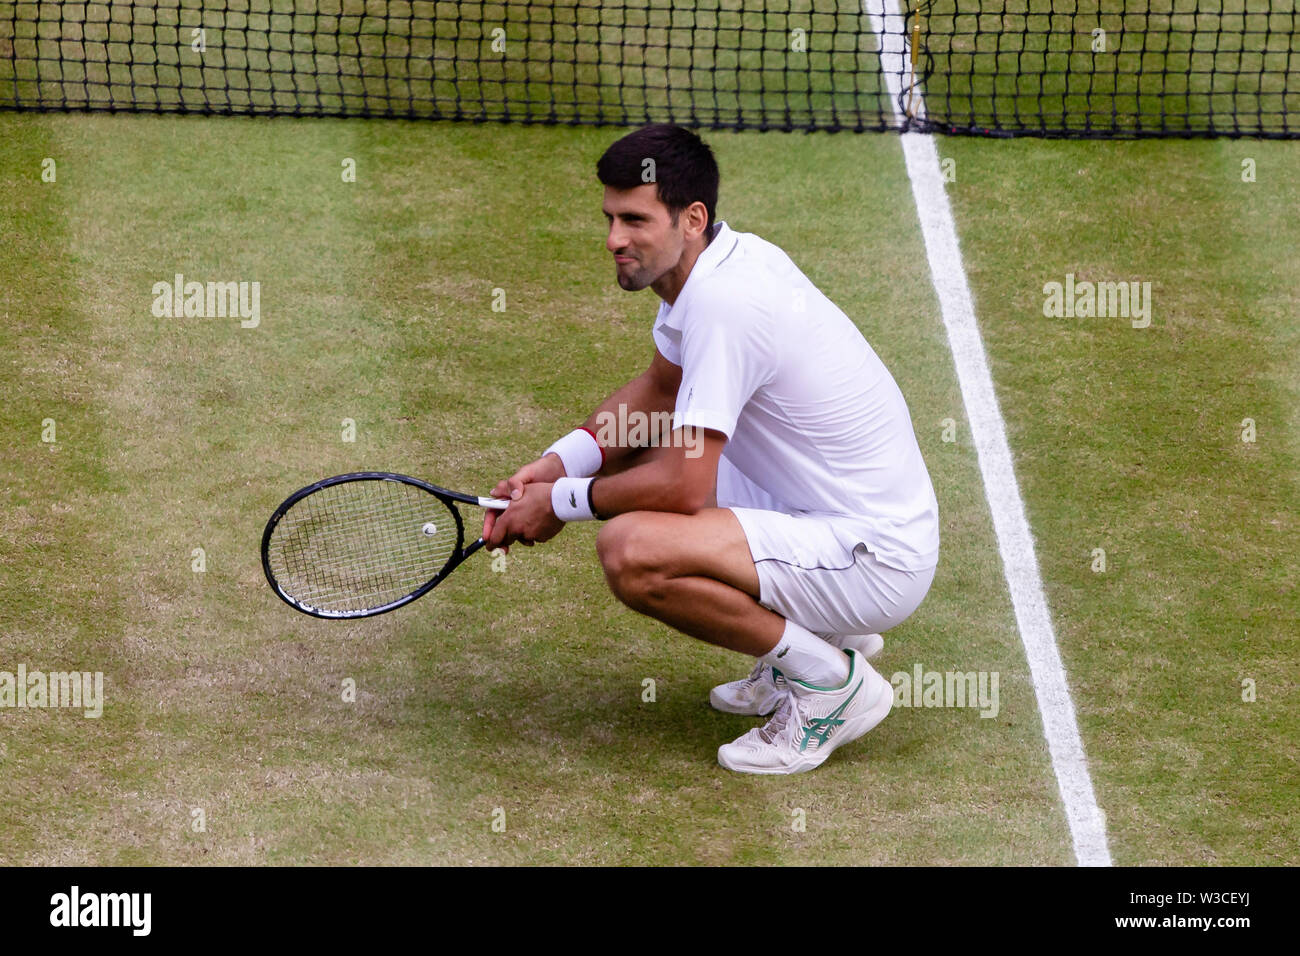 London, UK, 14th July 2019: Novak Djokovic from Serbia cheers after his 2019 Wimbledon victory at the All England Lawn Tennis and Croquet Club in London. Credit: Frank Molter/Alamy Live news Stock Photo